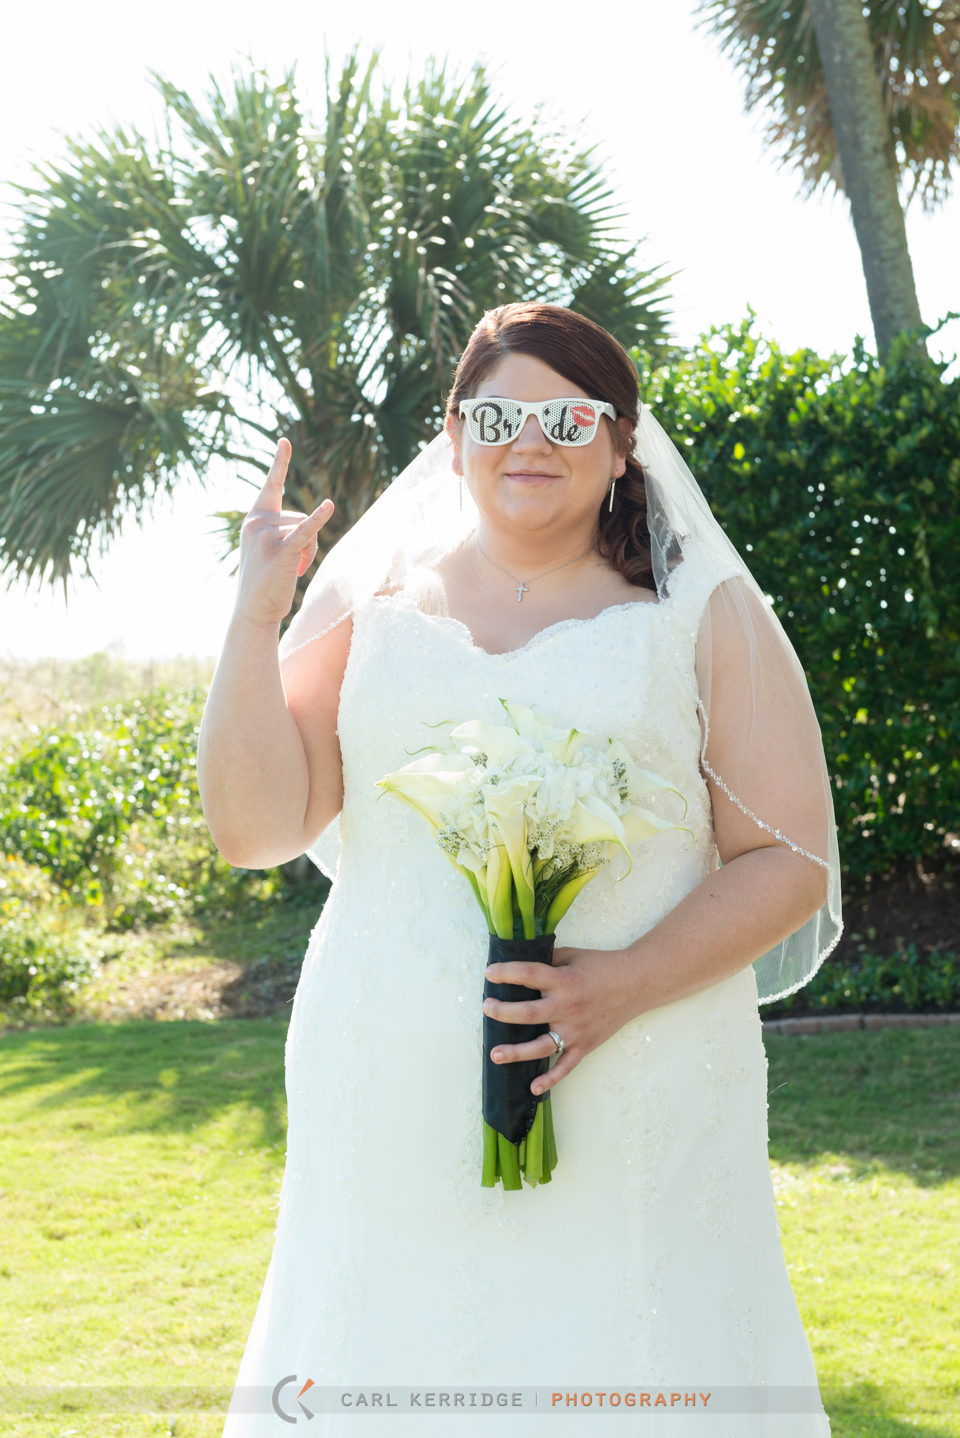 Myrtle Beach Wedding Photographer, Photojournalism, Color Wedding Image, Breakers Resort, Bridal, rockin out, happily ever after